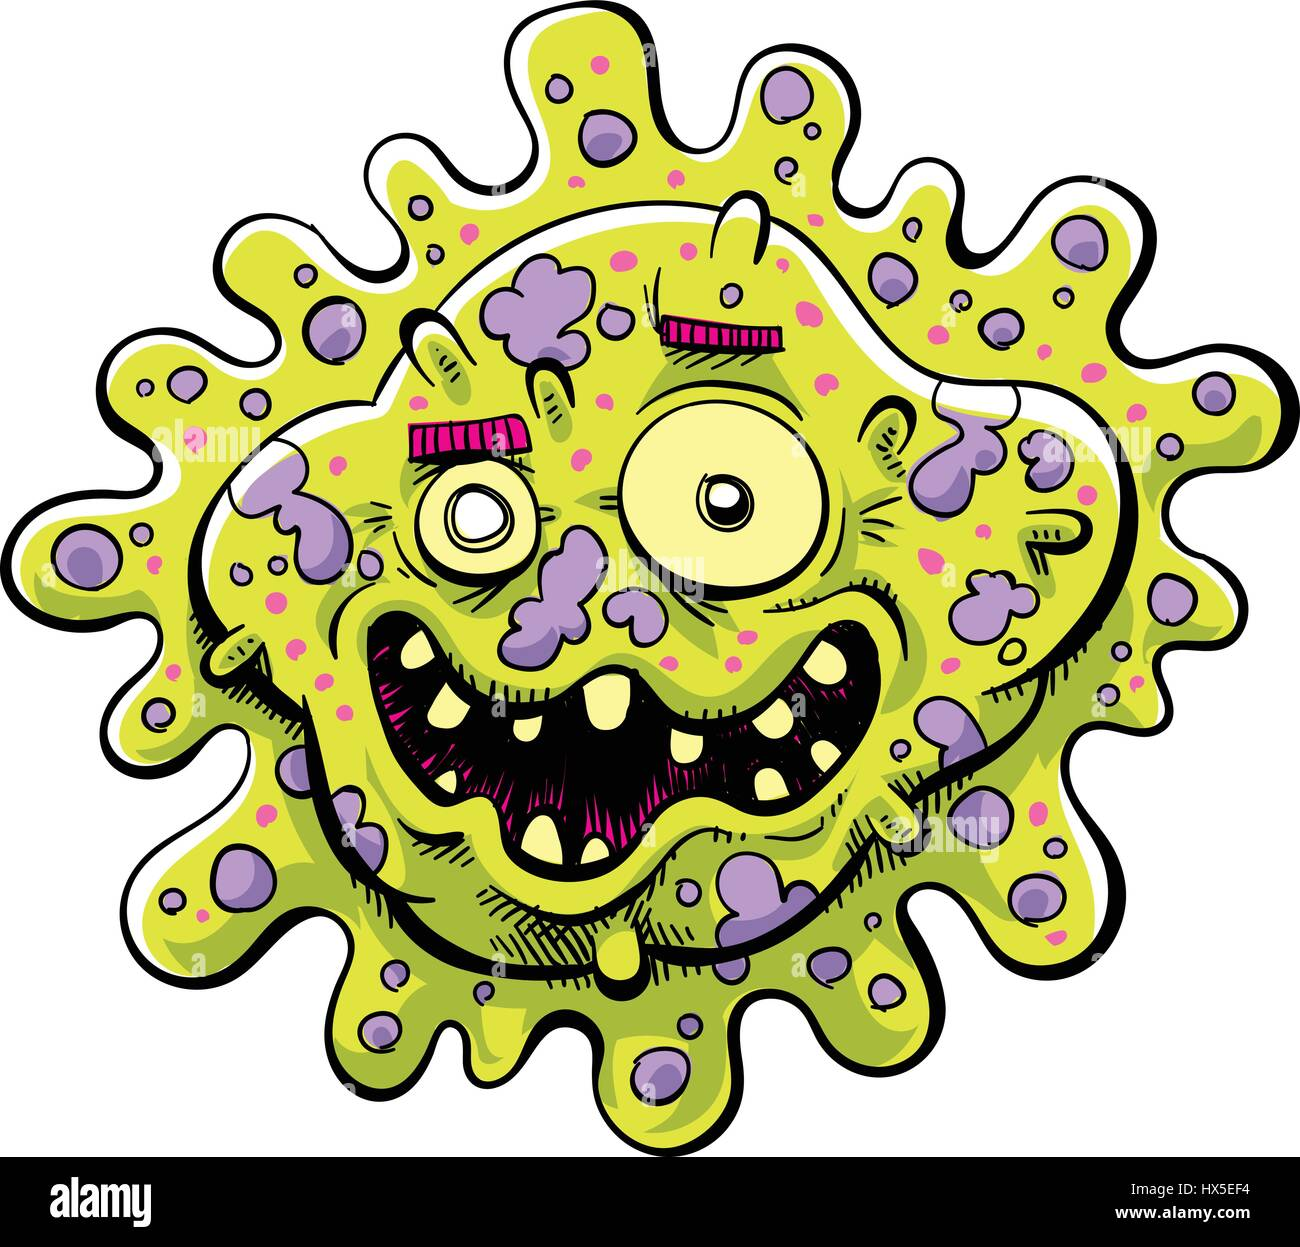 A happy cartoon bacteria germ with an ugly, toothy smile. - Stock Image